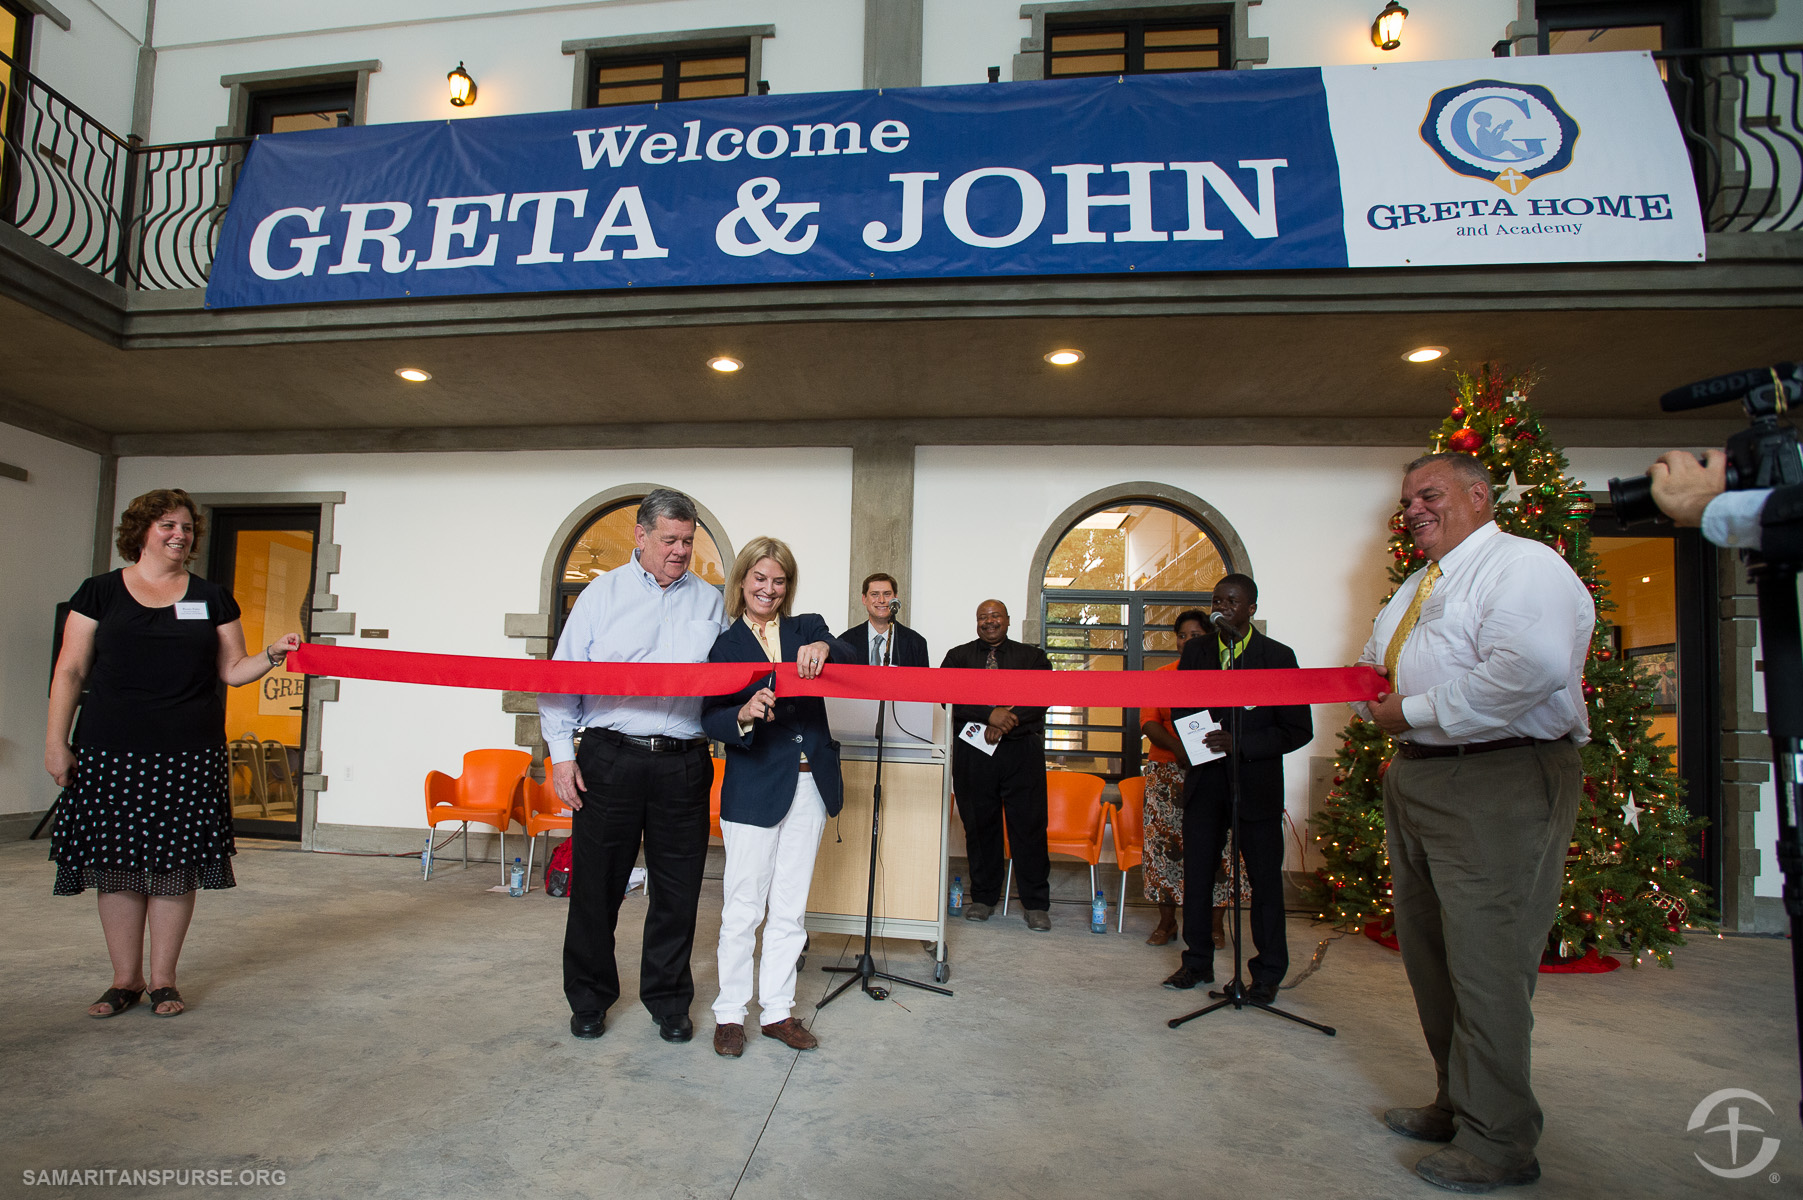 Greta Van Susteren has been involved in many Samaritan's Purse projects, including the dedication of the Greta Home and Academy in Haiti.